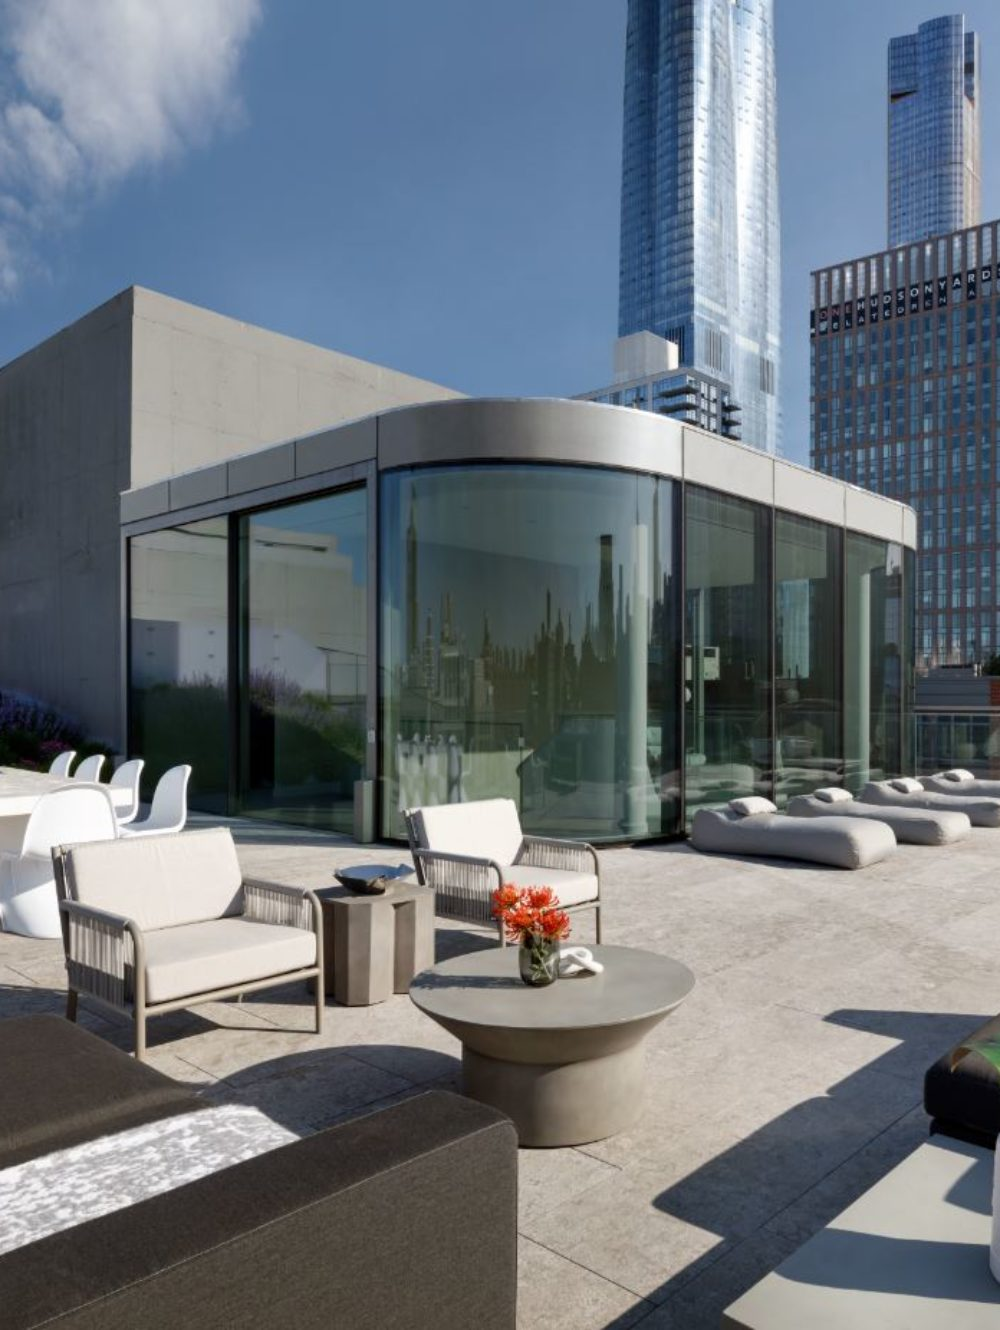 520 W 28 condominium exterior picture of rooftop terrace with a view of New York City. Has tables and couches.